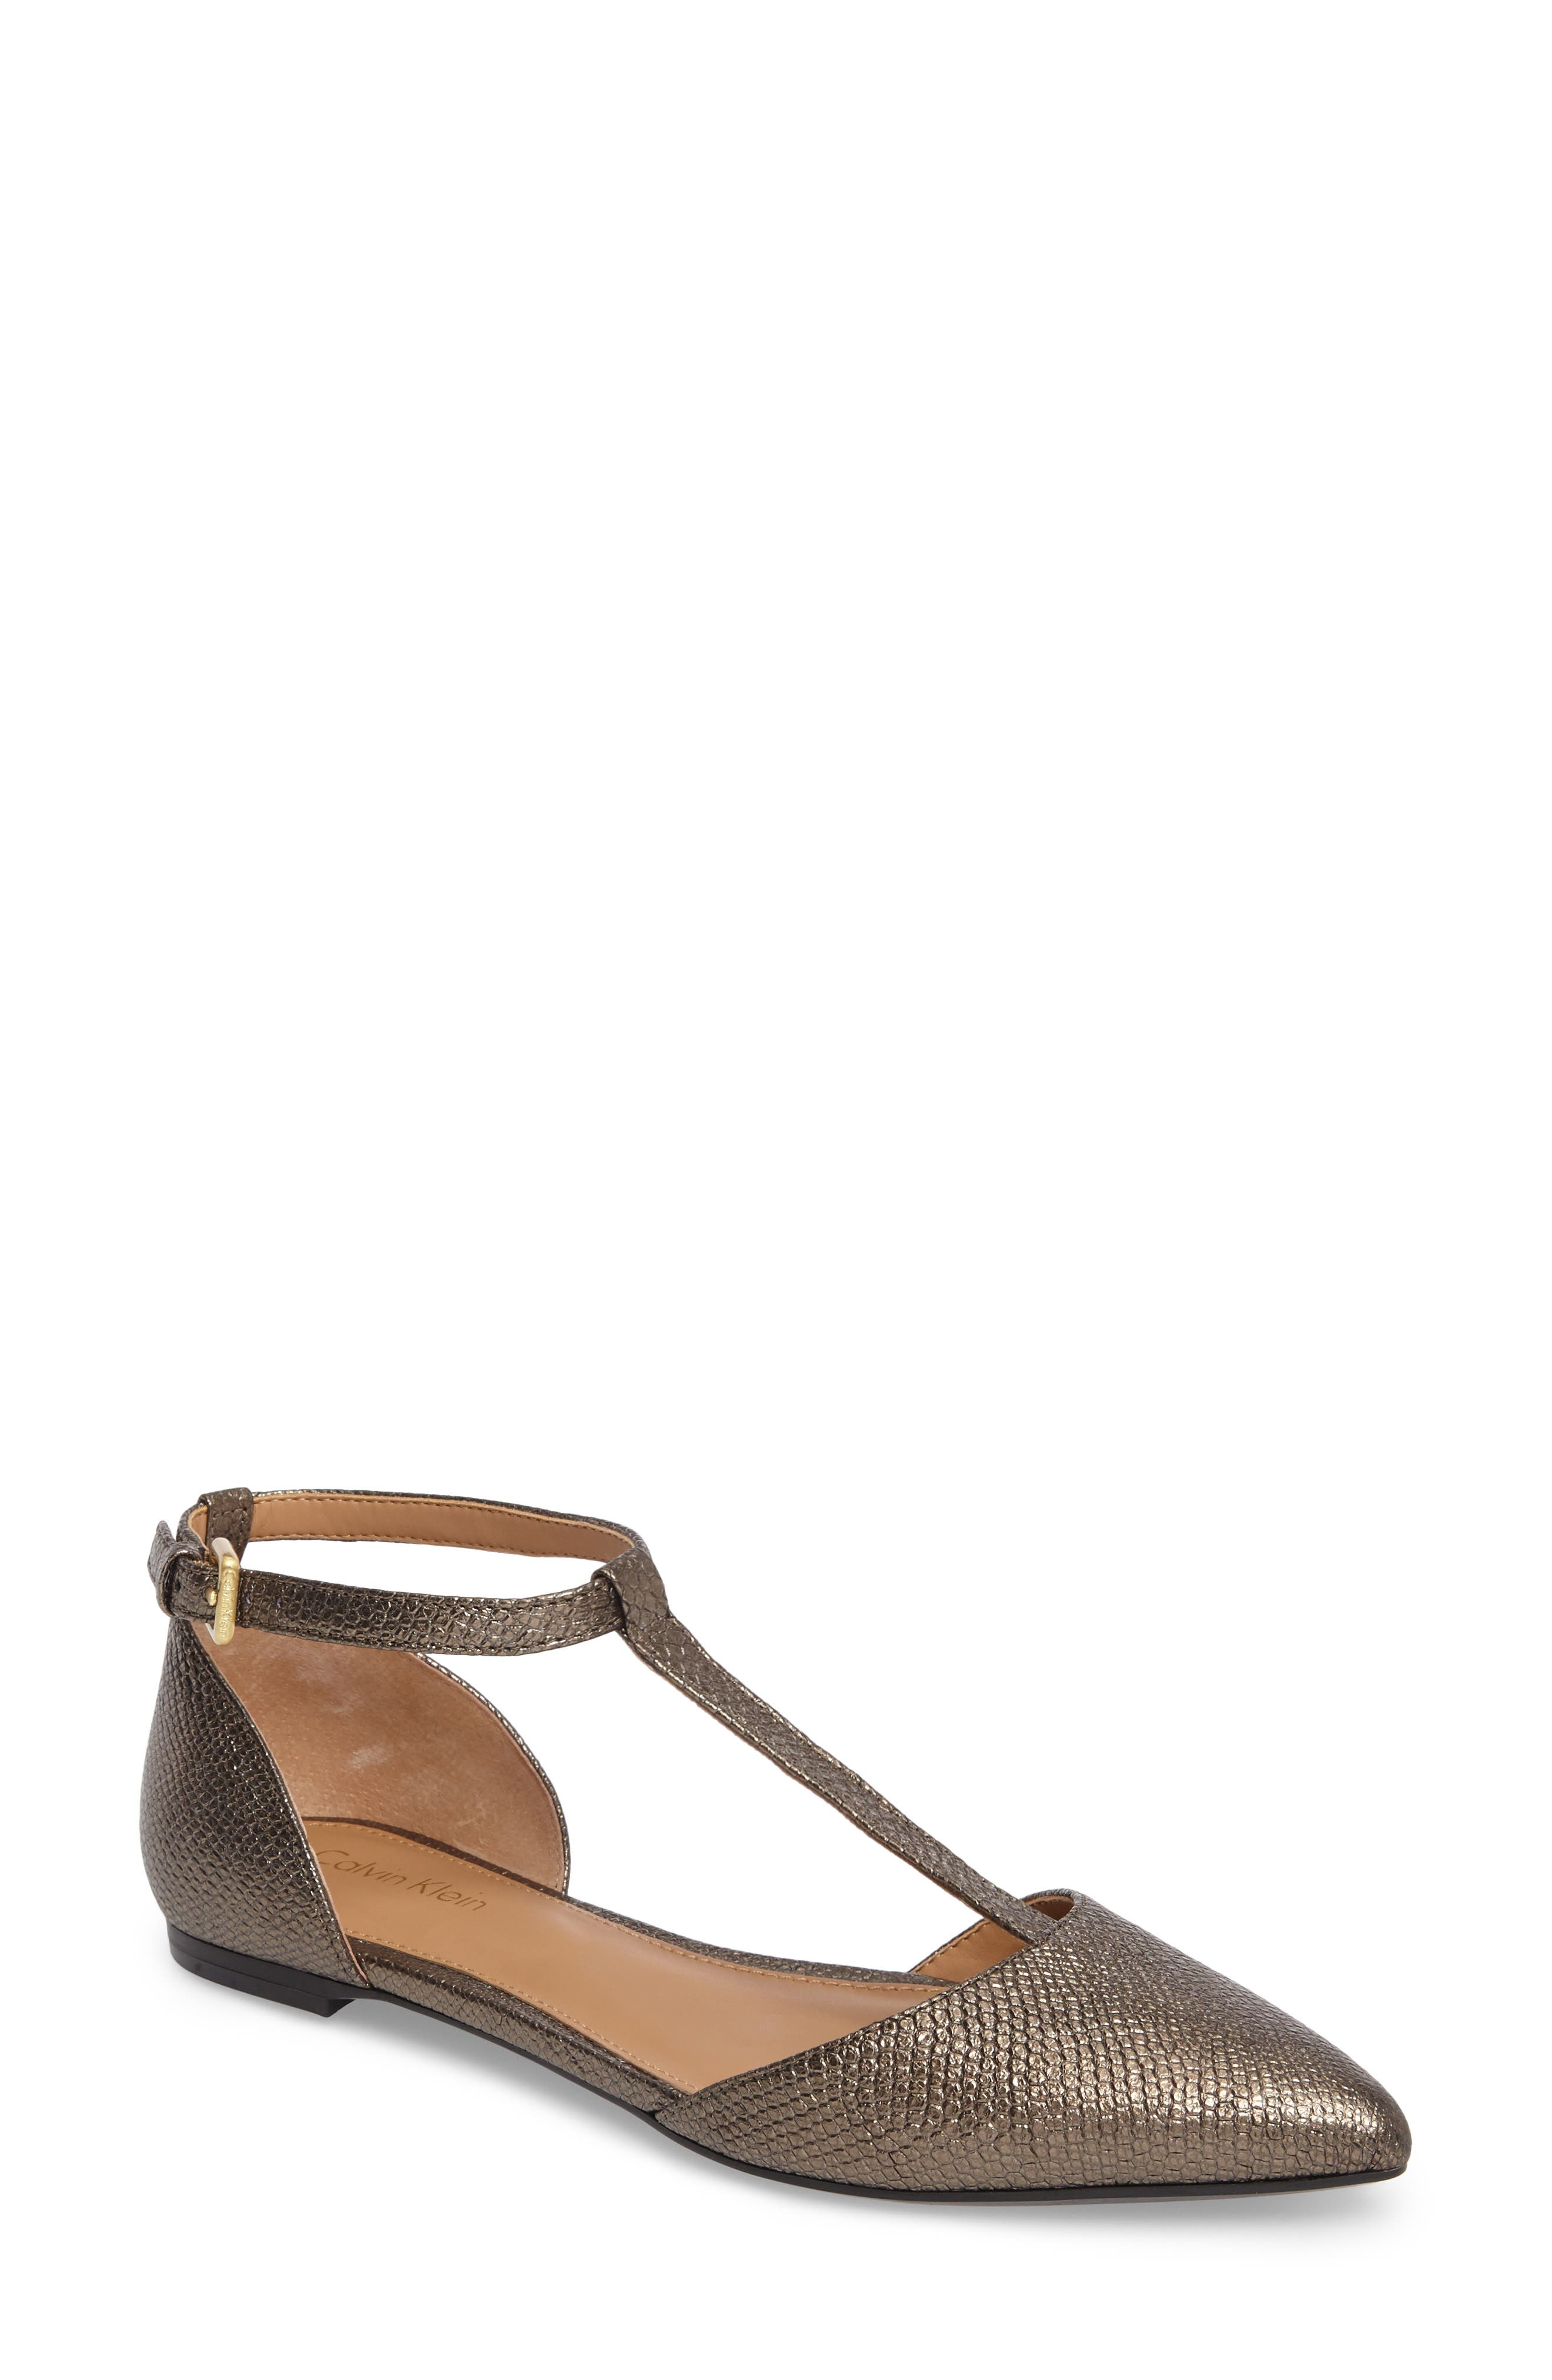 'Ghita' T-Strap Flat,                             Main thumbnail 1, color,                             Gold Foiled Leather